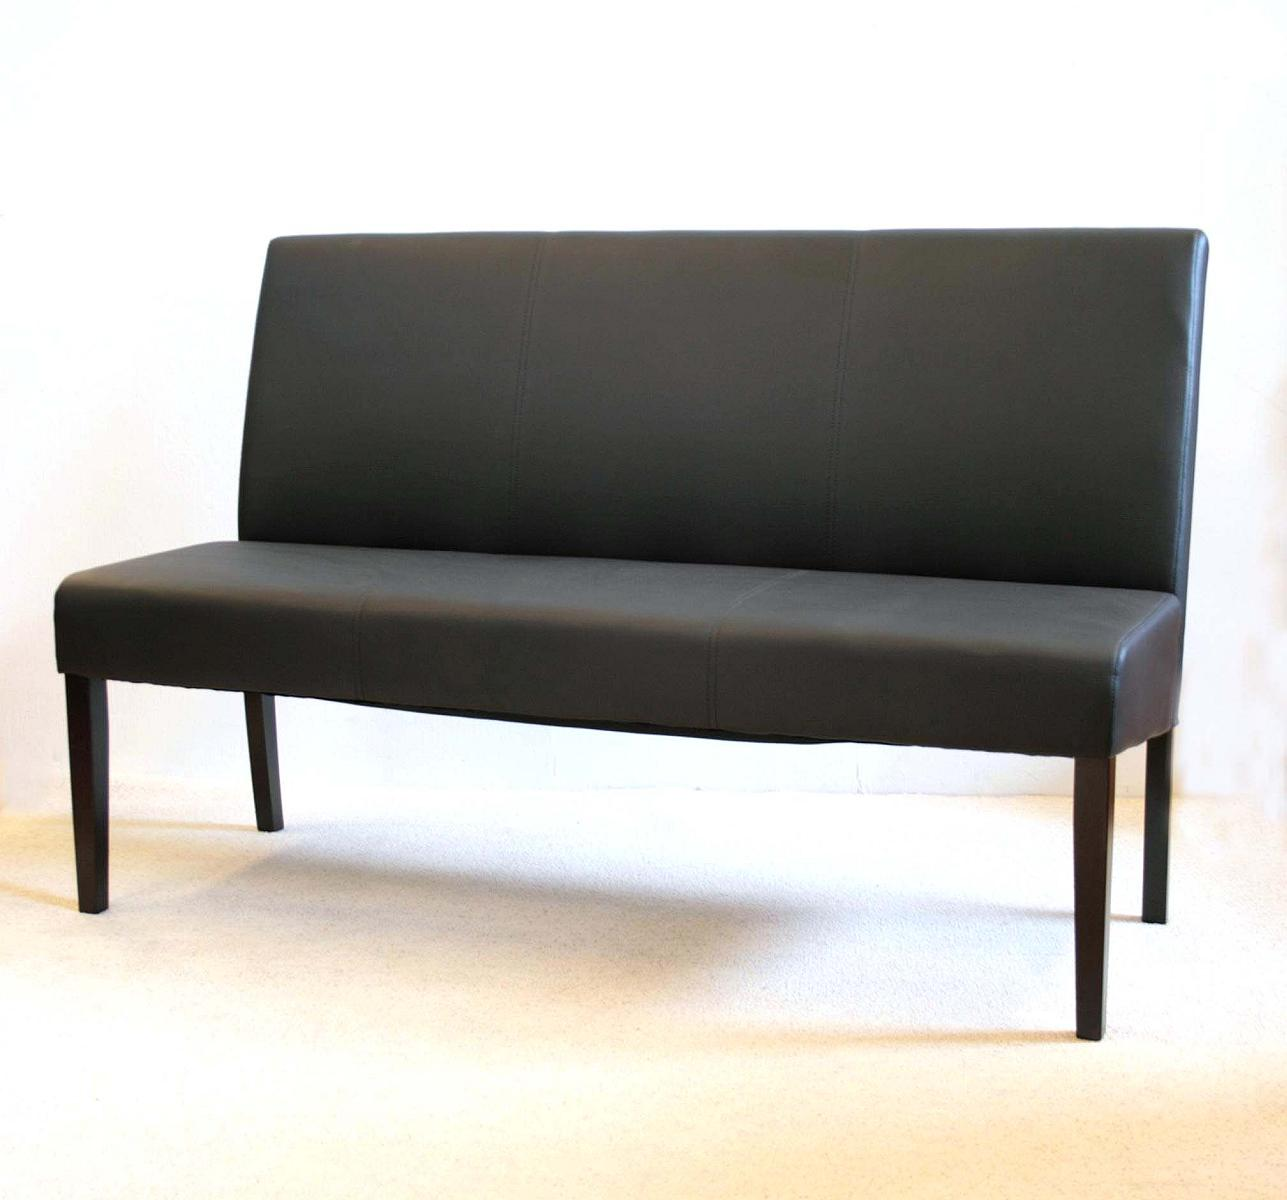 elektra sitzbank textilleder schwarz kolonial 150 cm ebay. Black Bedroom Furniture Sets. Home Design Ideas